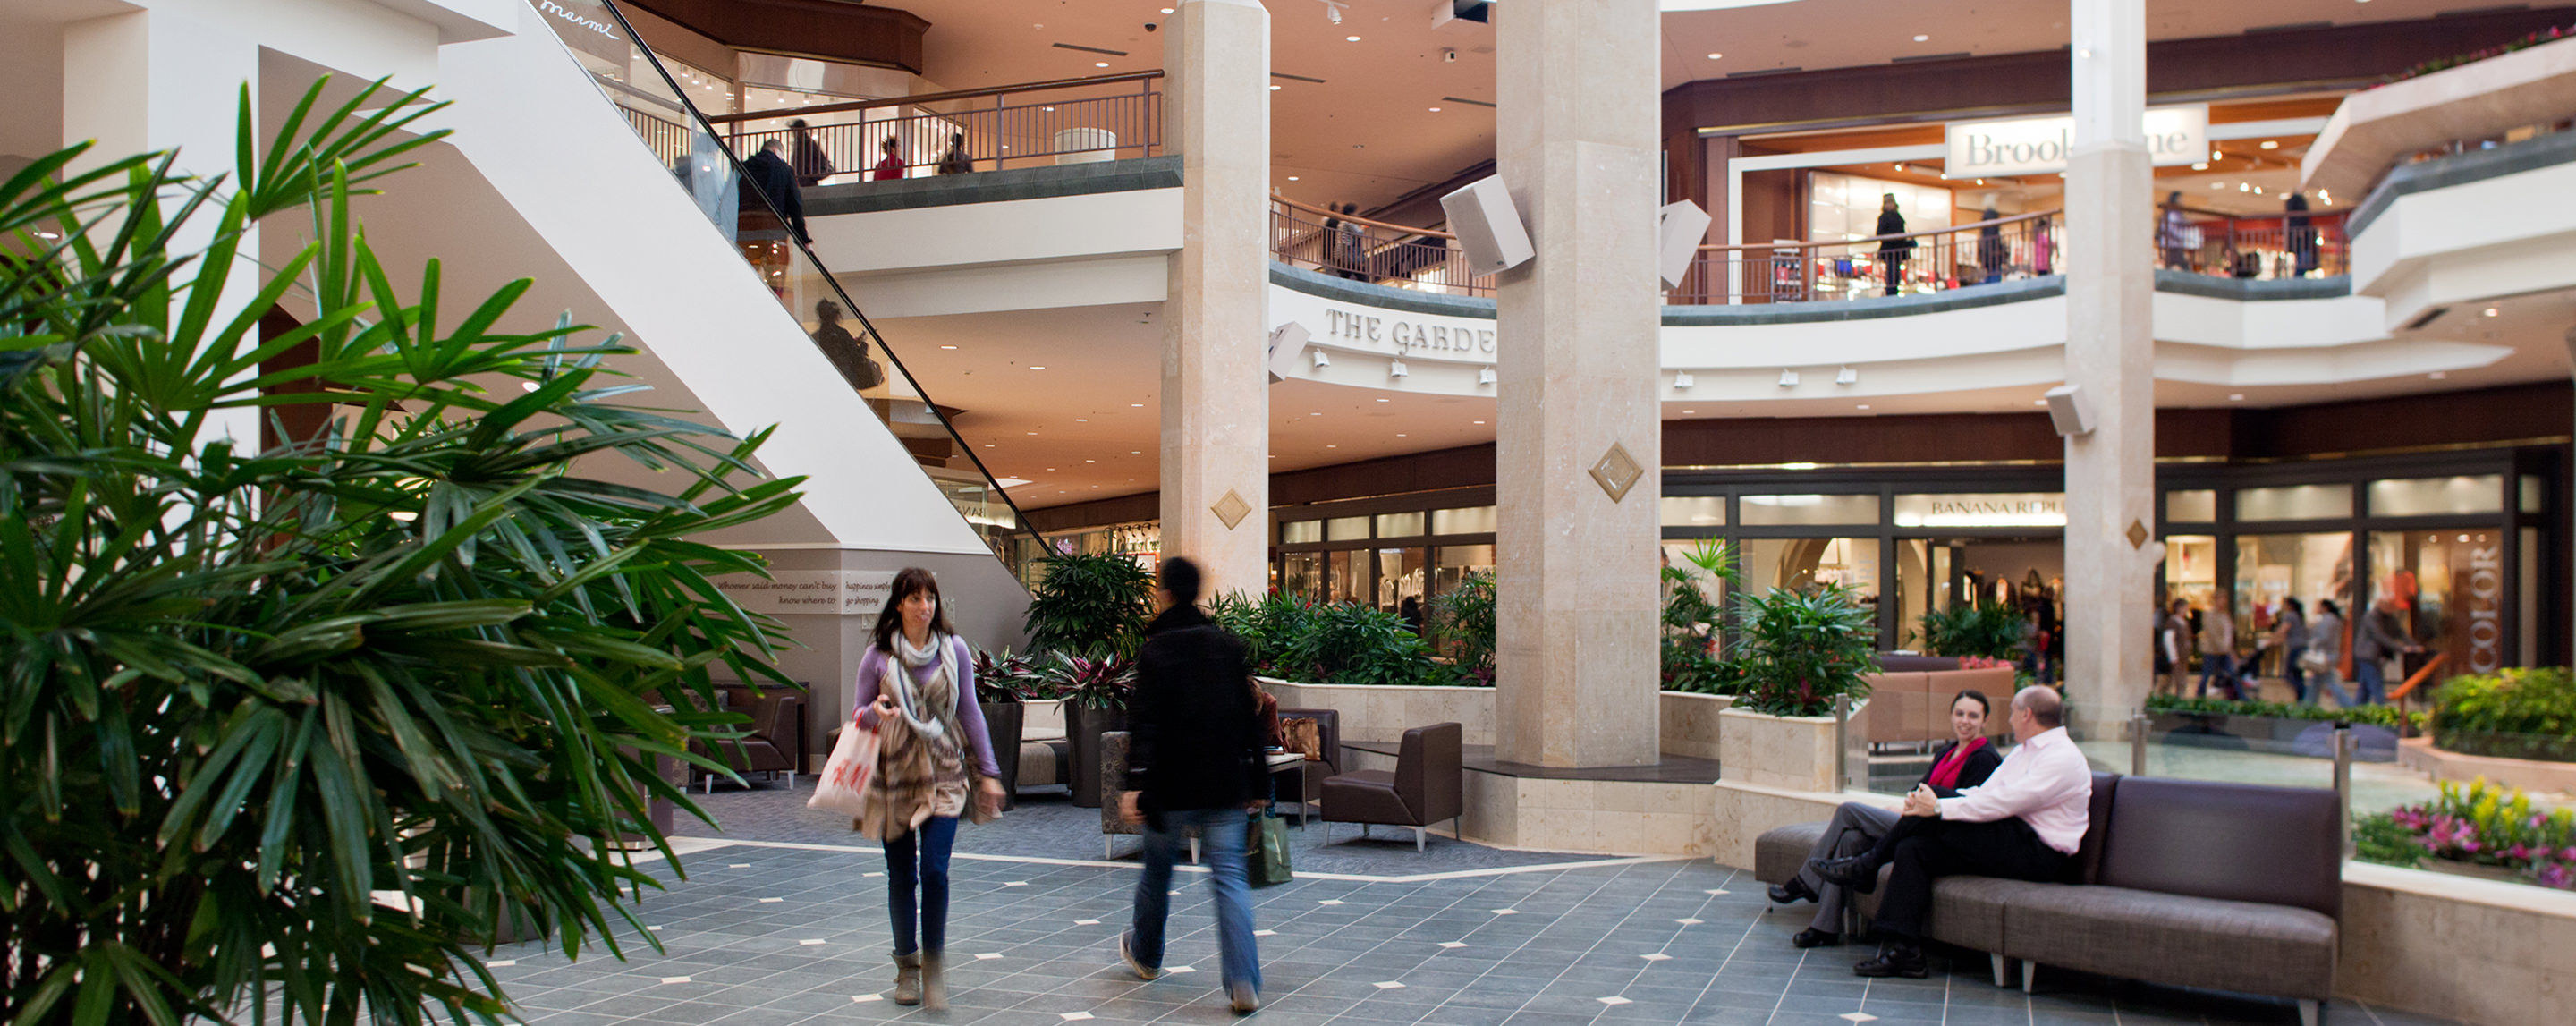 Stores and a plan are visible as shoppers walk across the common area on the lower level of Saint Louis Galleria.